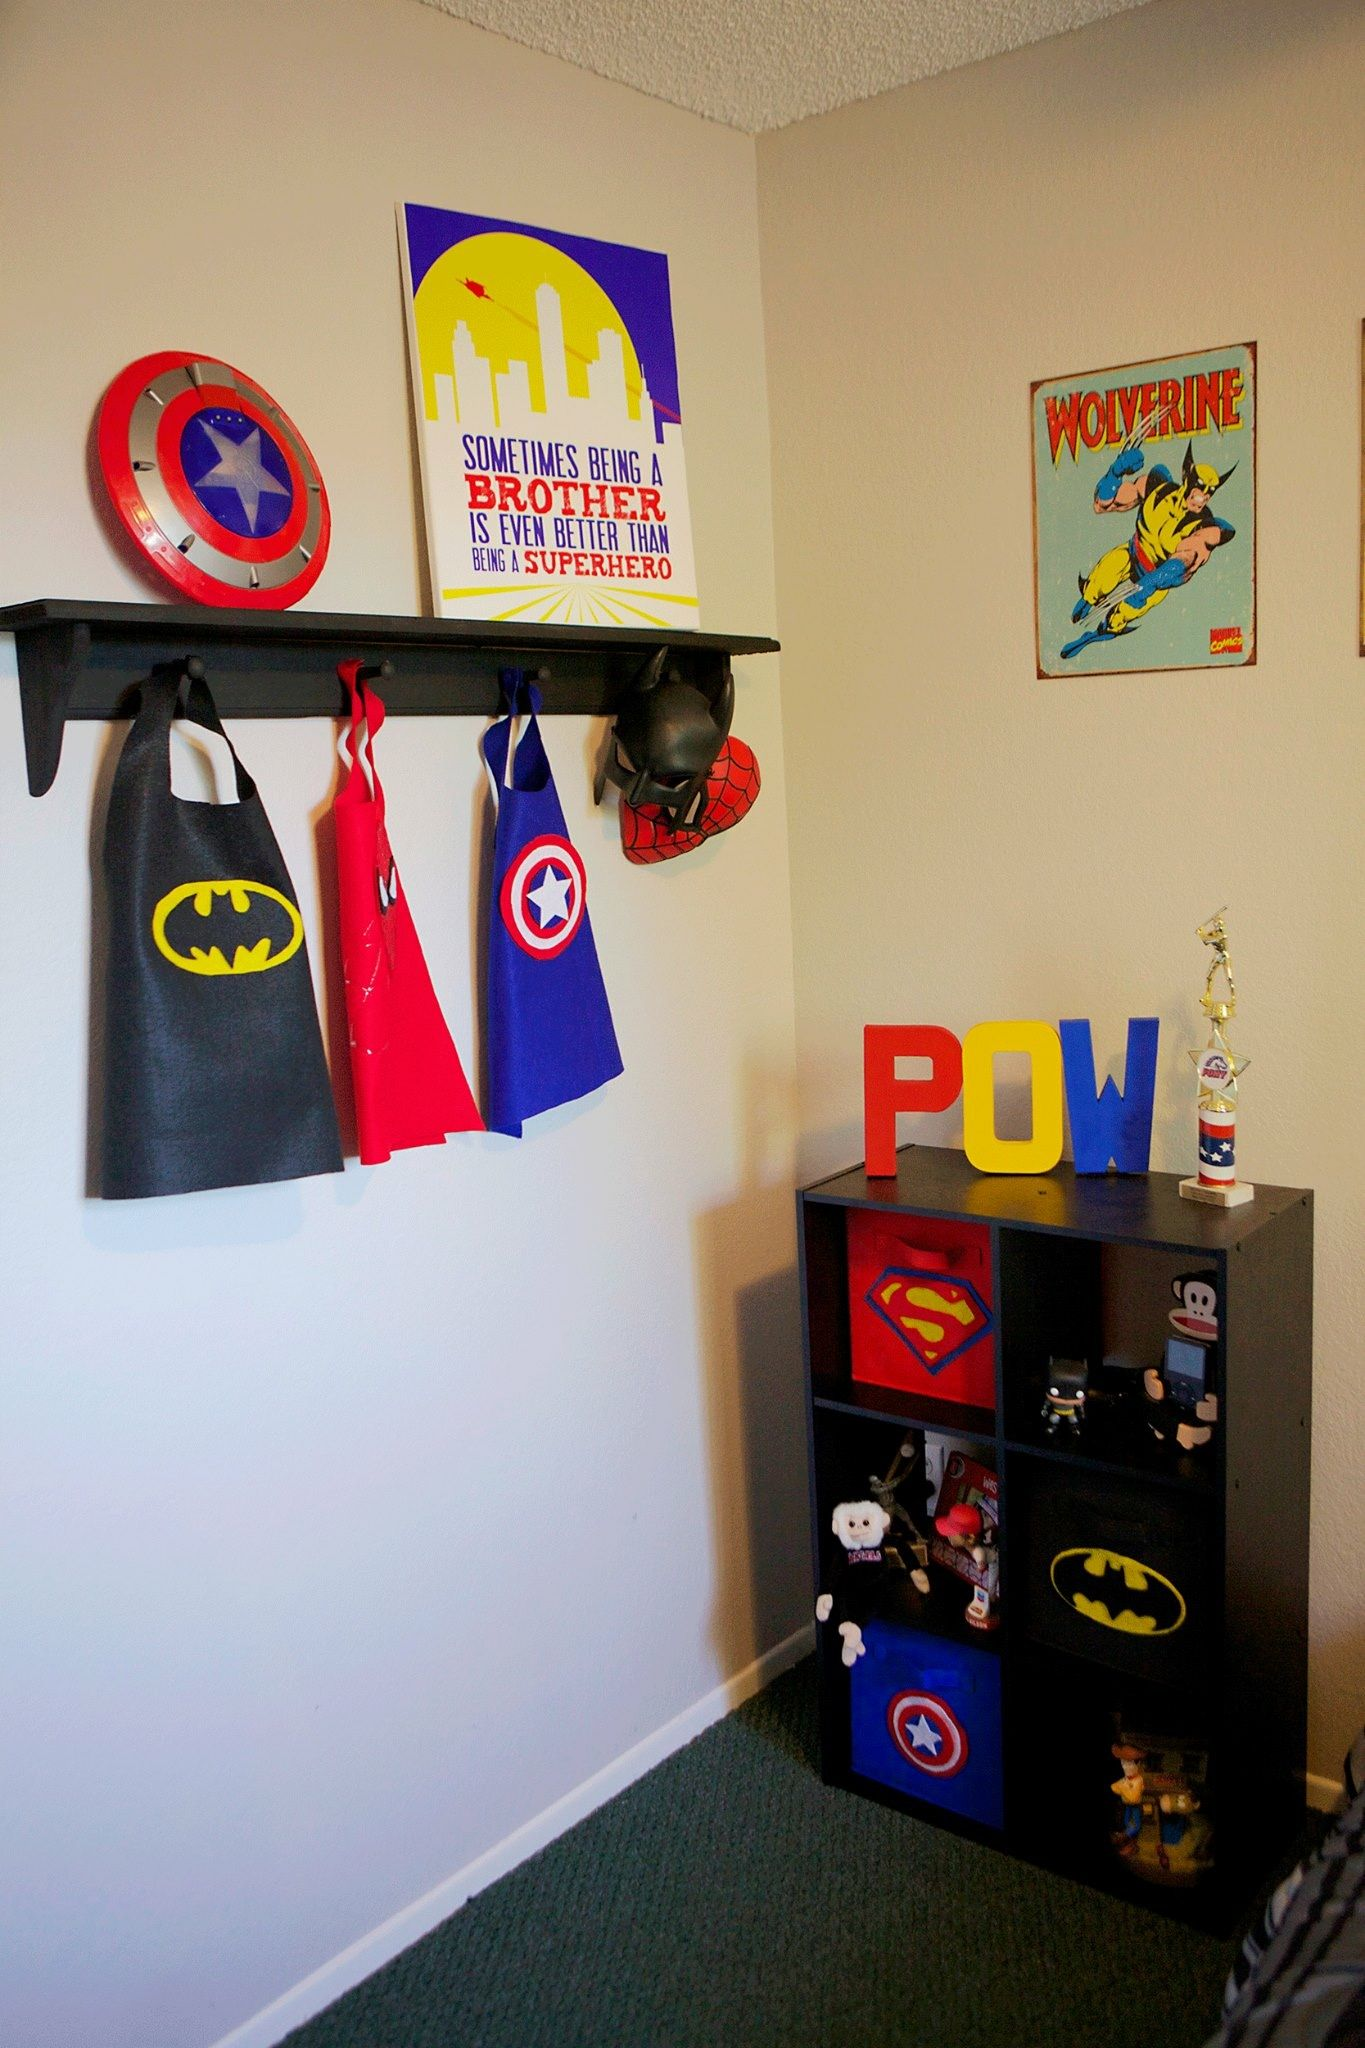 pingl par amy lefler sur playroom ideas pinterest chambre super heros super h ros et chambres. Black Bedroom Furniture Sets. Home Design Ideas